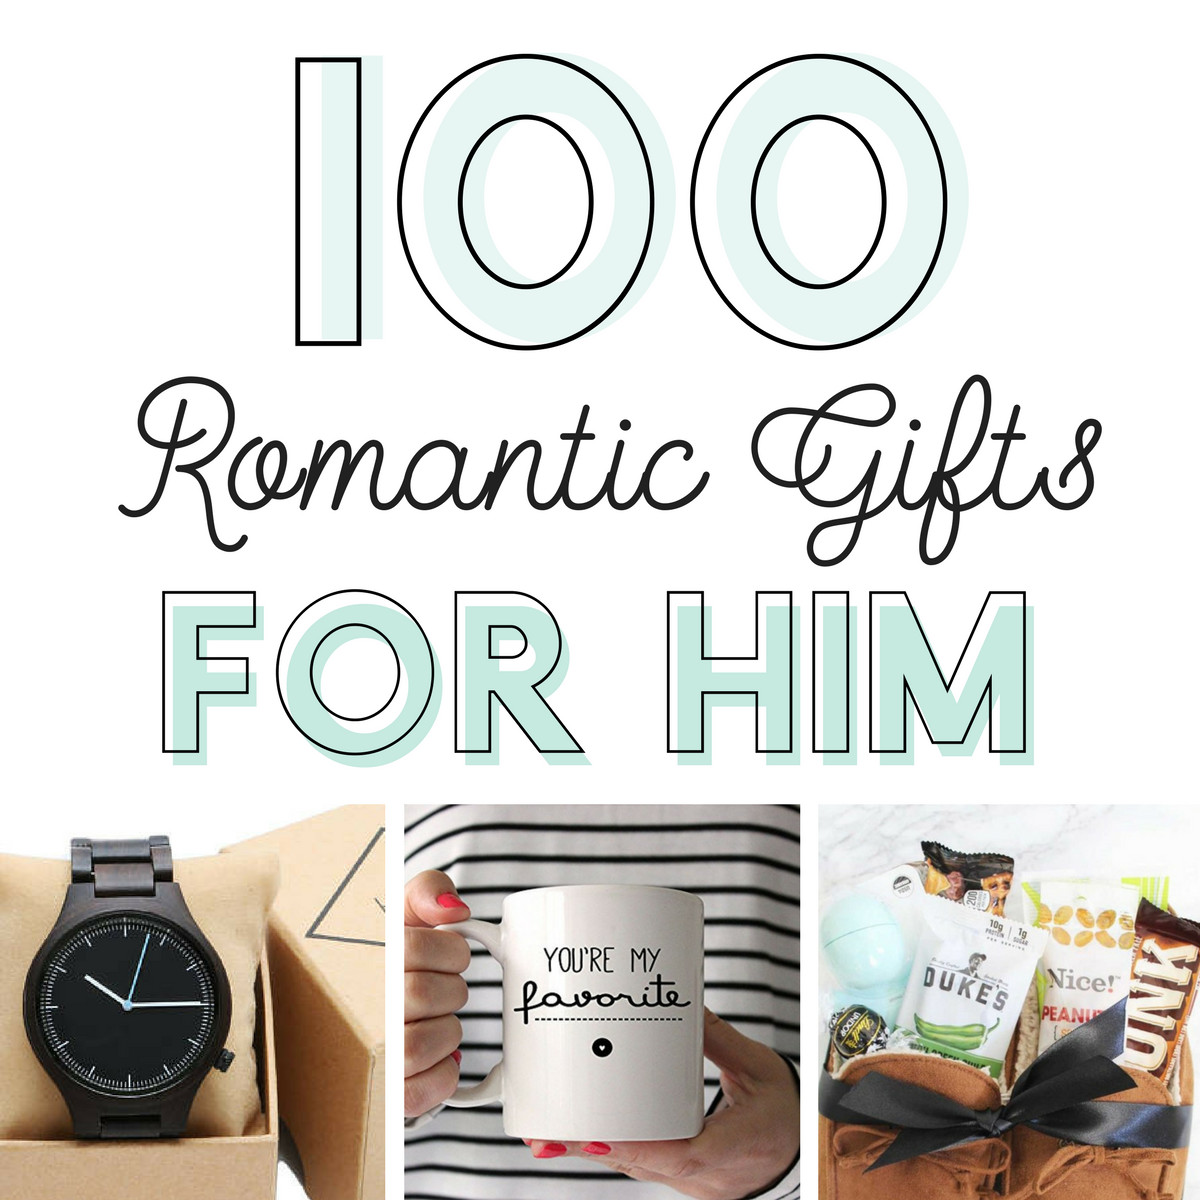 Best ideas about Romantic Gift Ideas For Him . Save or Pin 100 Romantic Gifts for Him From The Dating Divas Now.